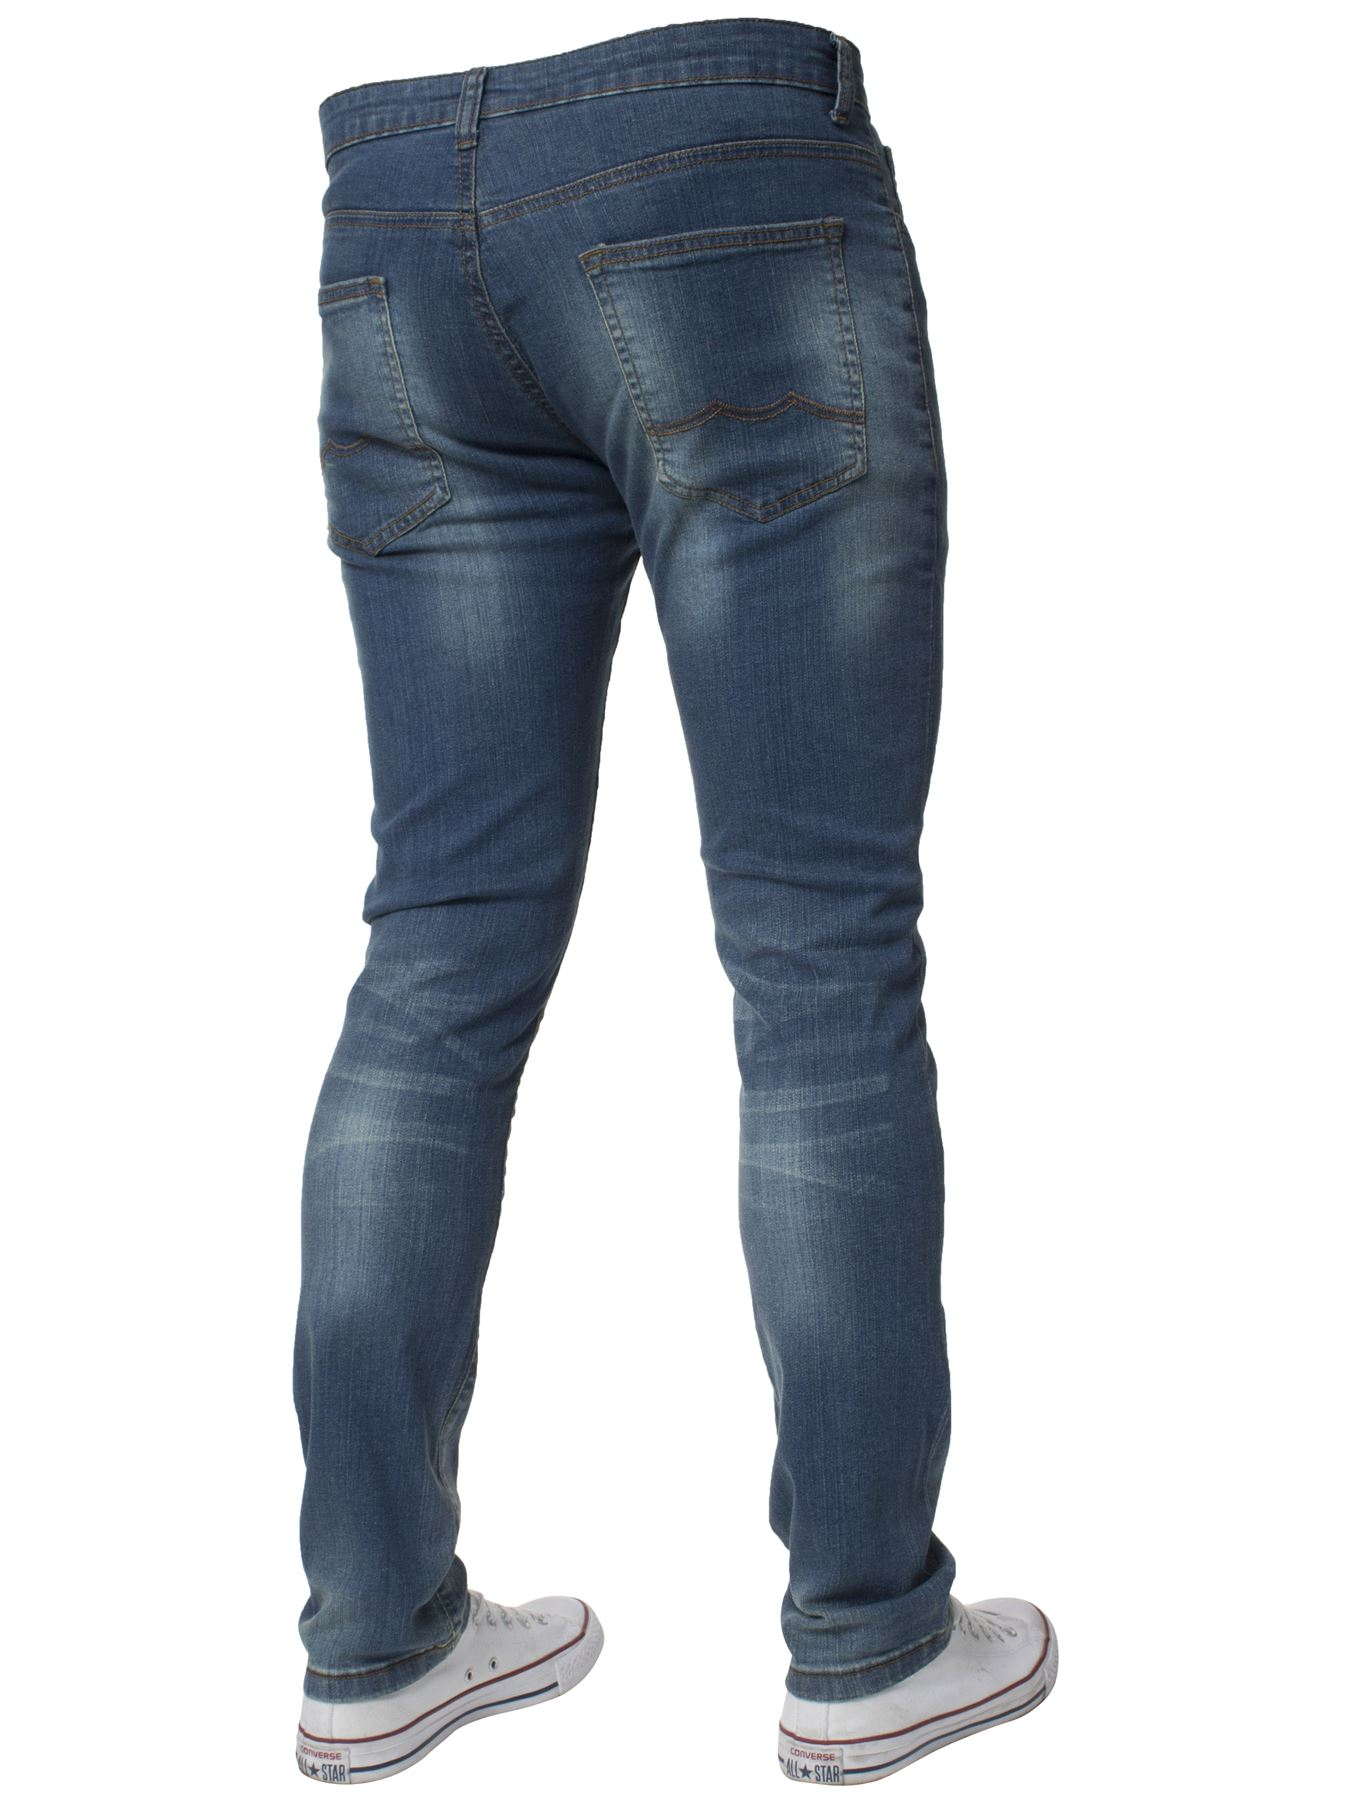 Mens-Skinny-Stretch-Jeans-Slim-Fit-Flex-Denim-Trousers-Pants-King-Sizes-by-Kruze thumbnail 23